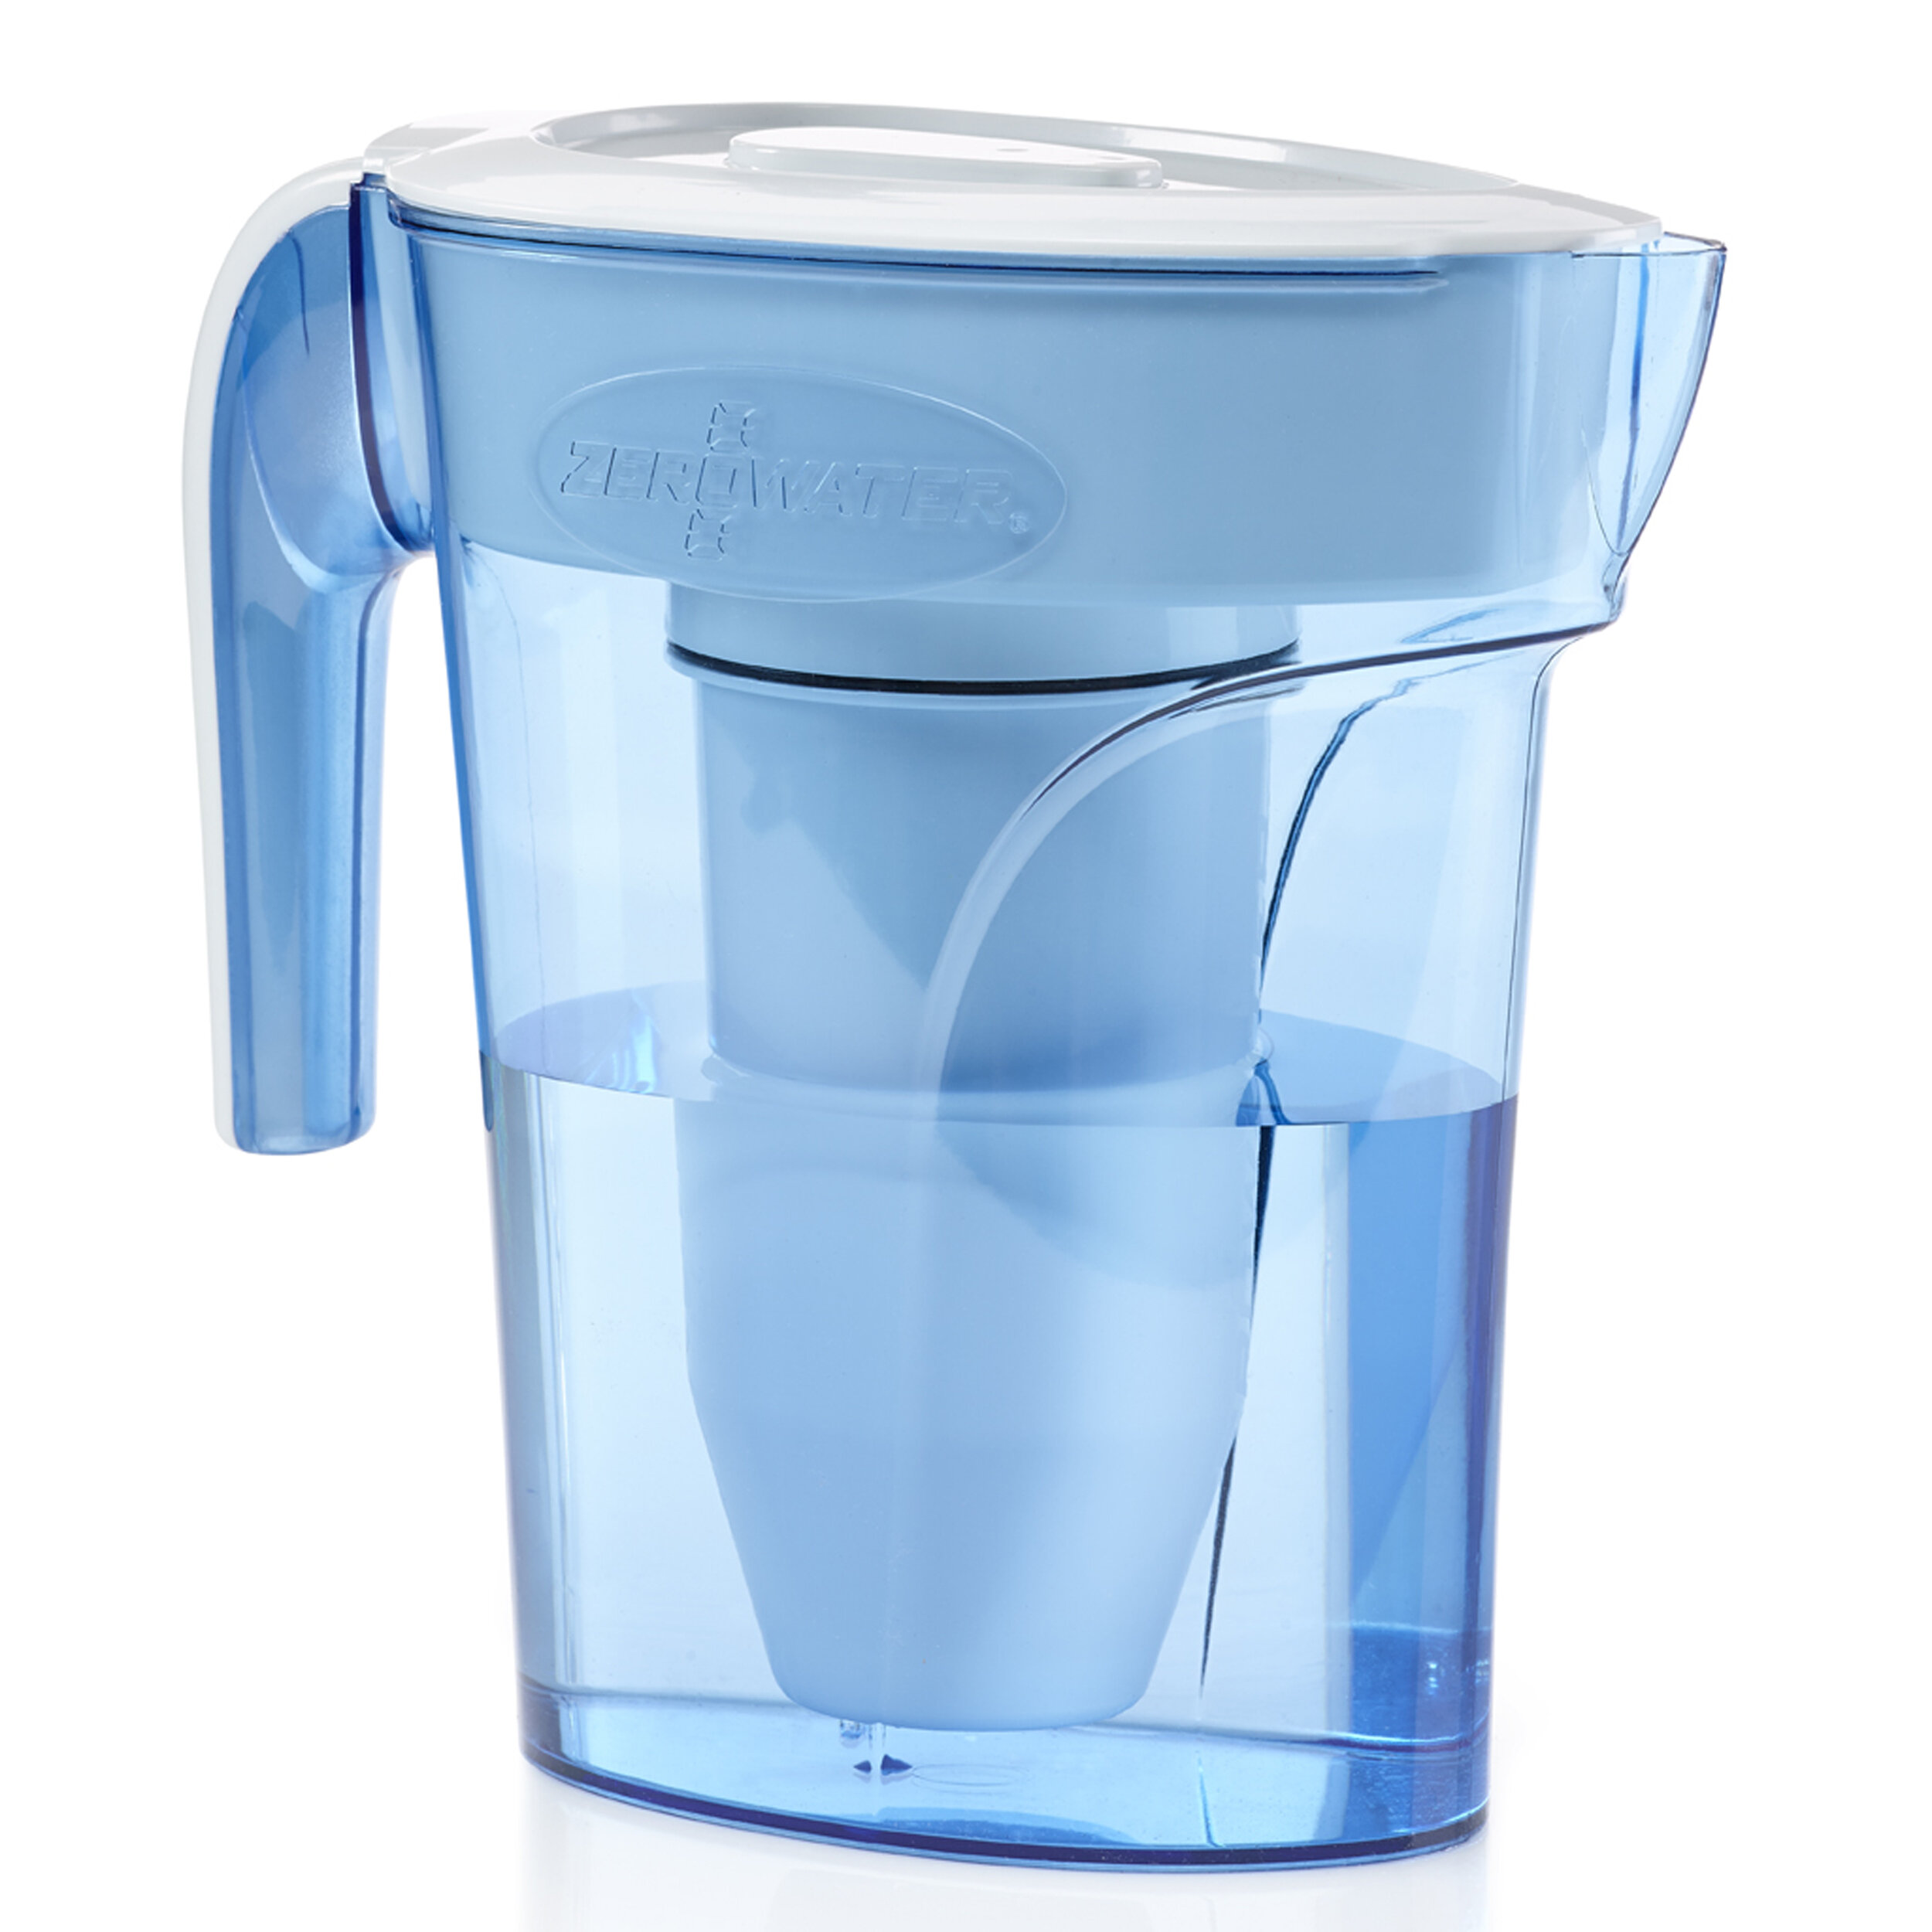 ZeroWater 6-Cup Water filtration pitcher & Reviews | Wayfair